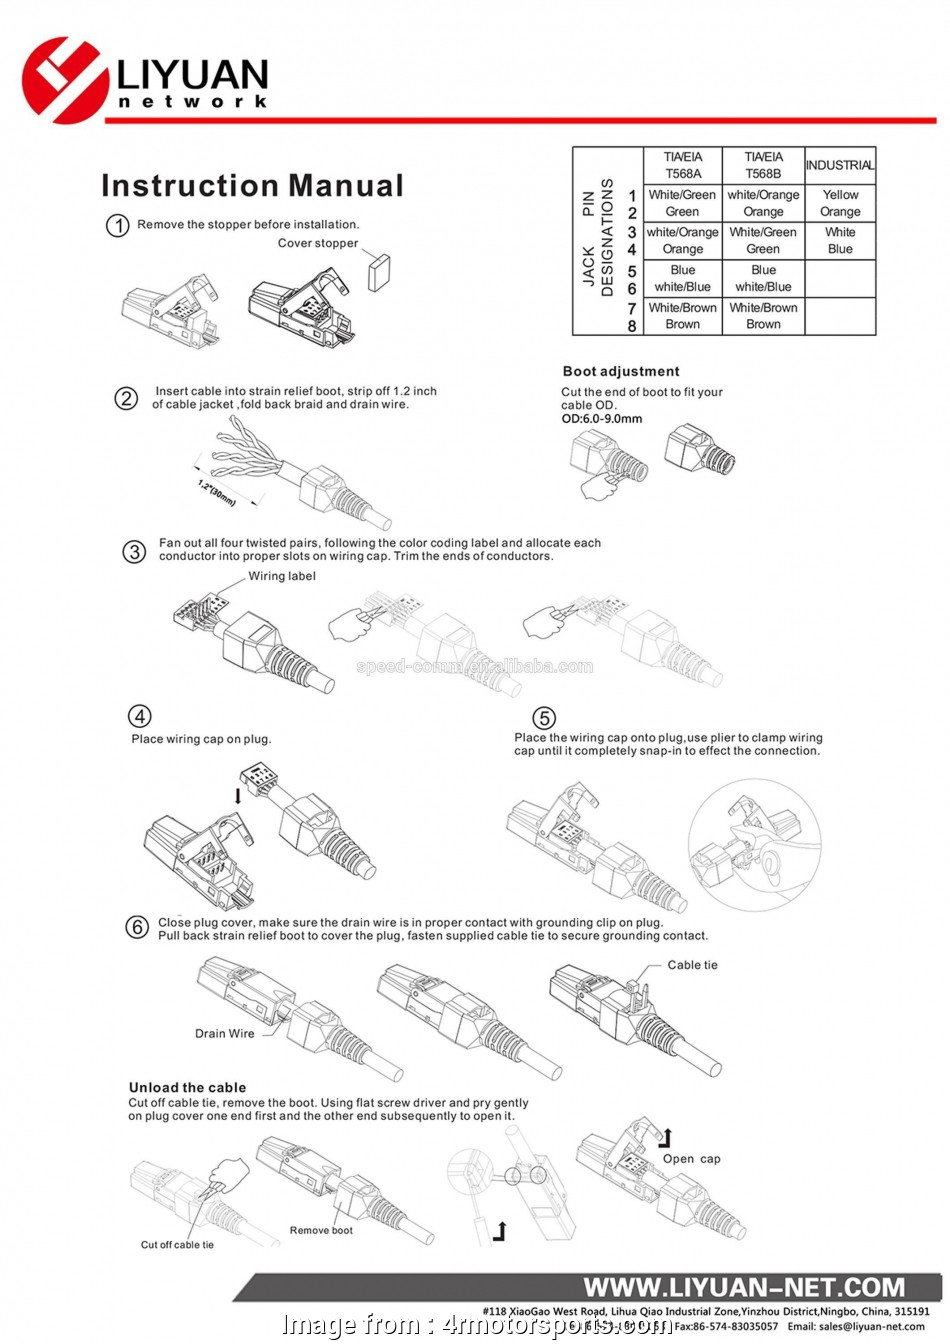 Rj11 To Rj45 Wiring Diagram For Your Needs